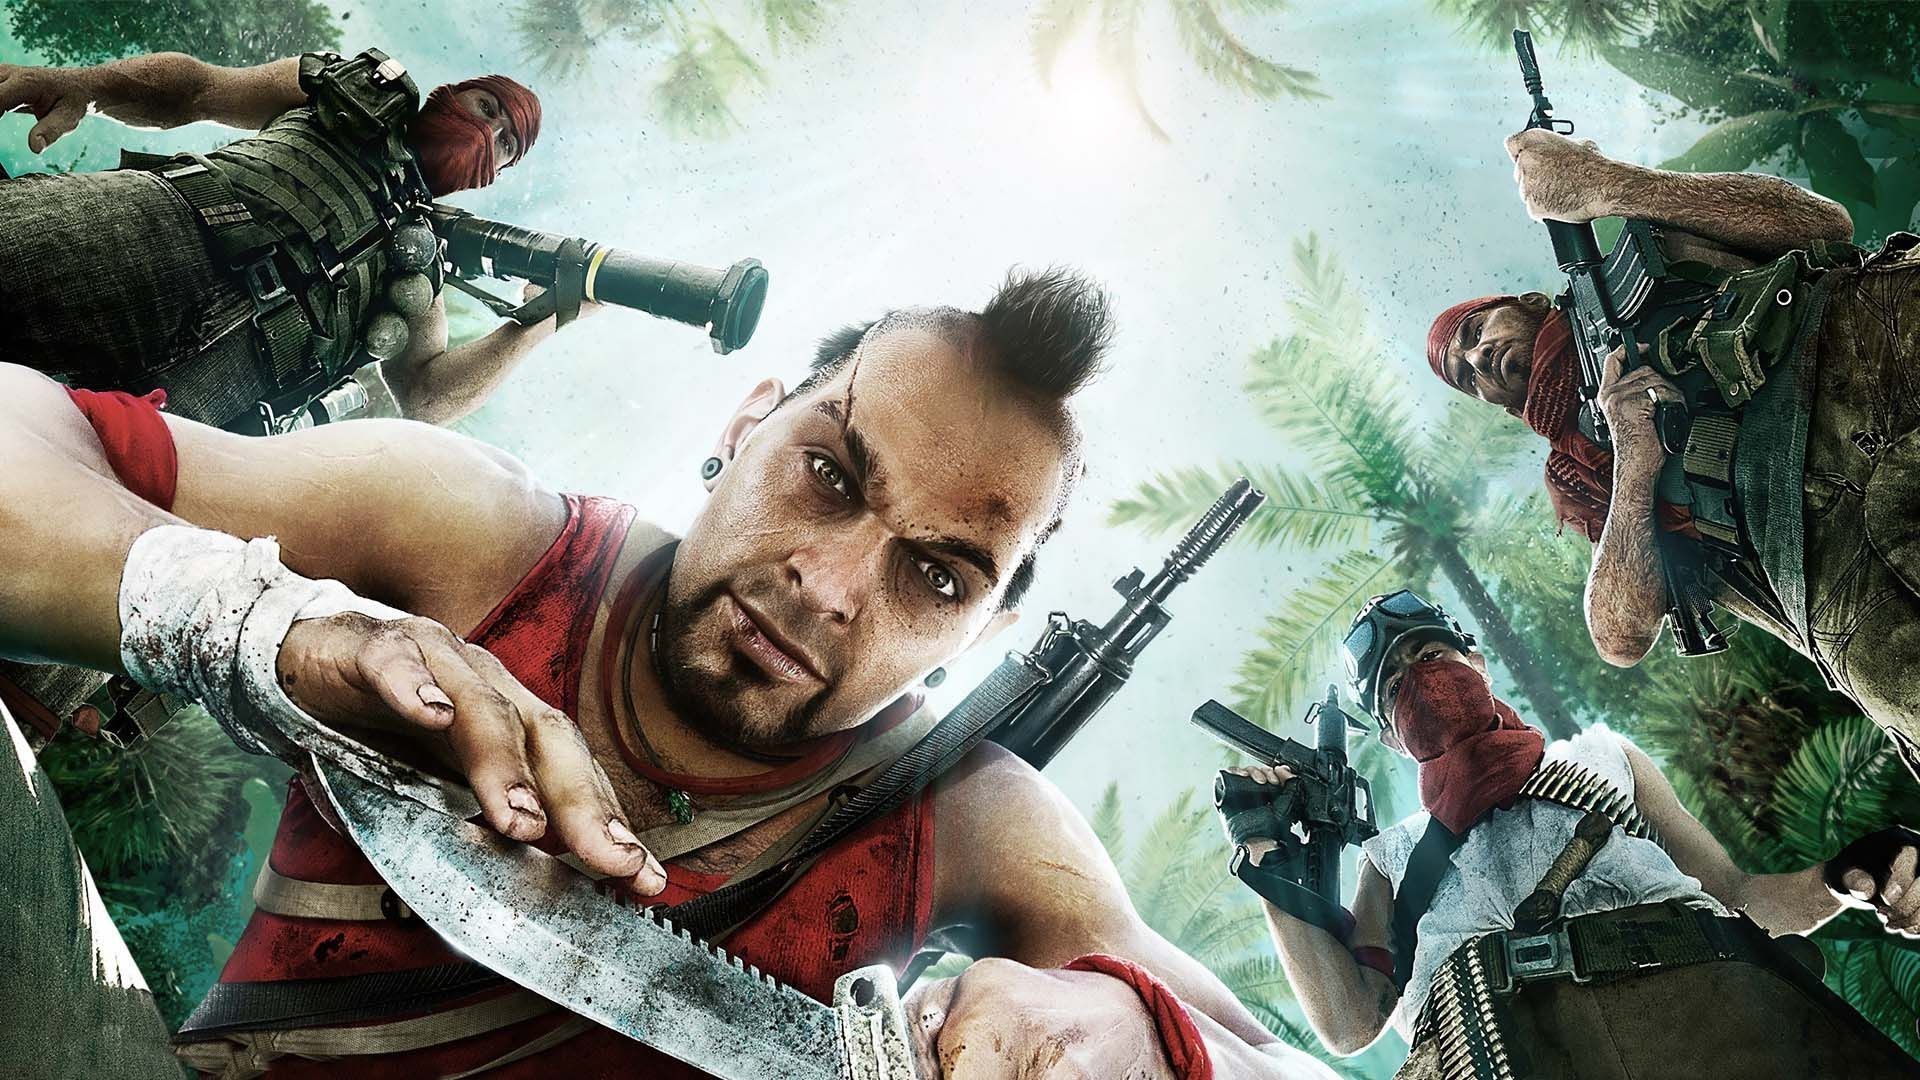 1920x1080 Vaas Far Cry 3 02 | HD Games Wallpaper Free Download ...